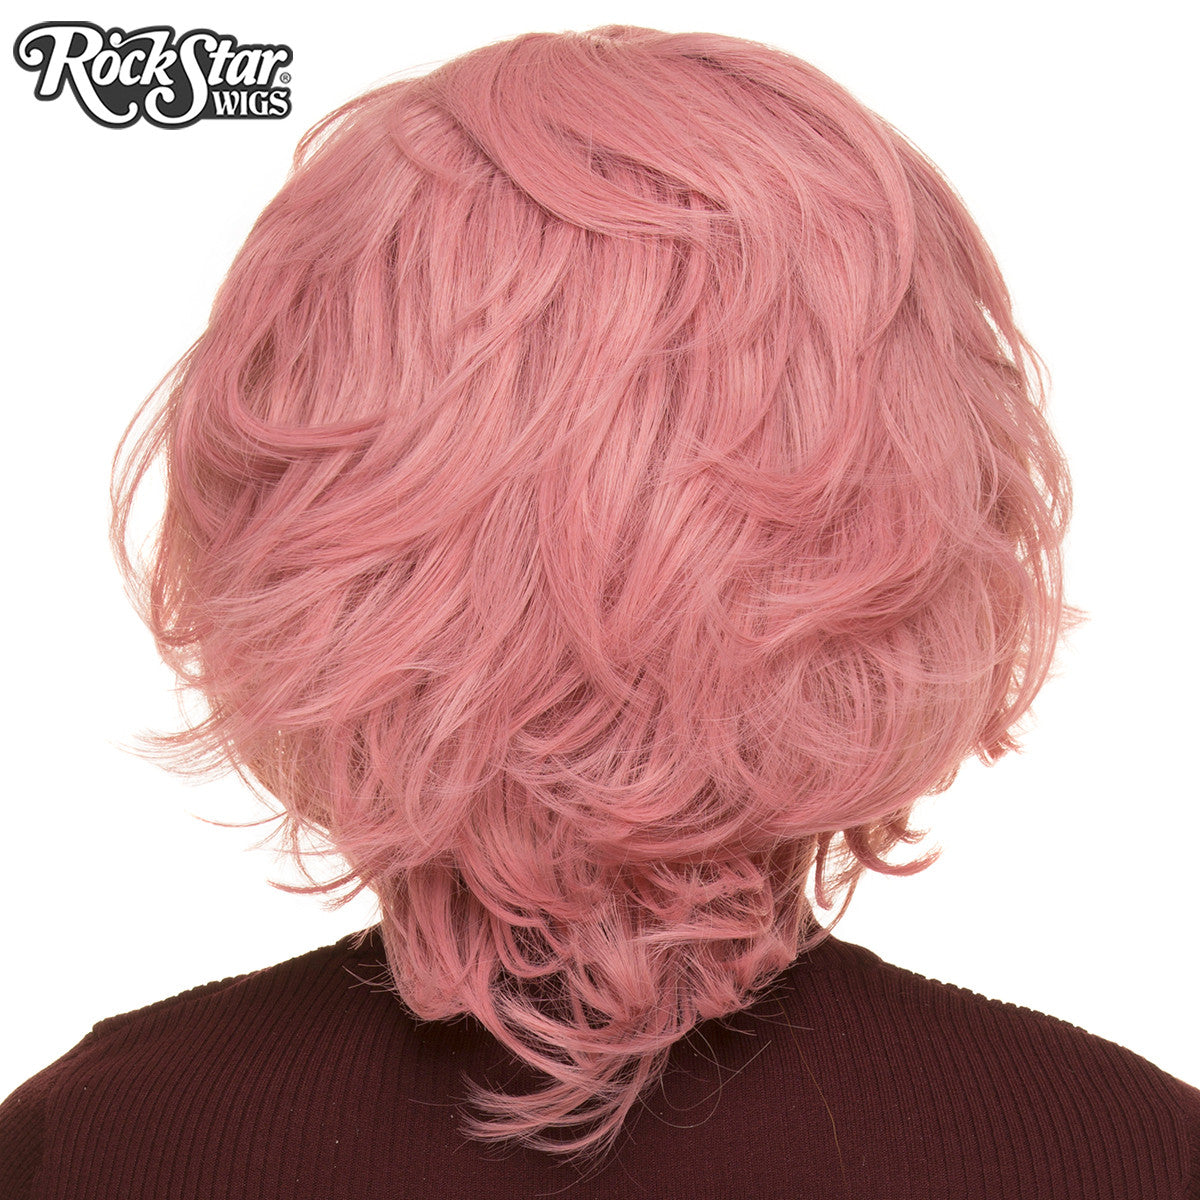 Cosplay Wigs USA™ <br> Boy Cut Short Shag - Milkshake Pink - 00524